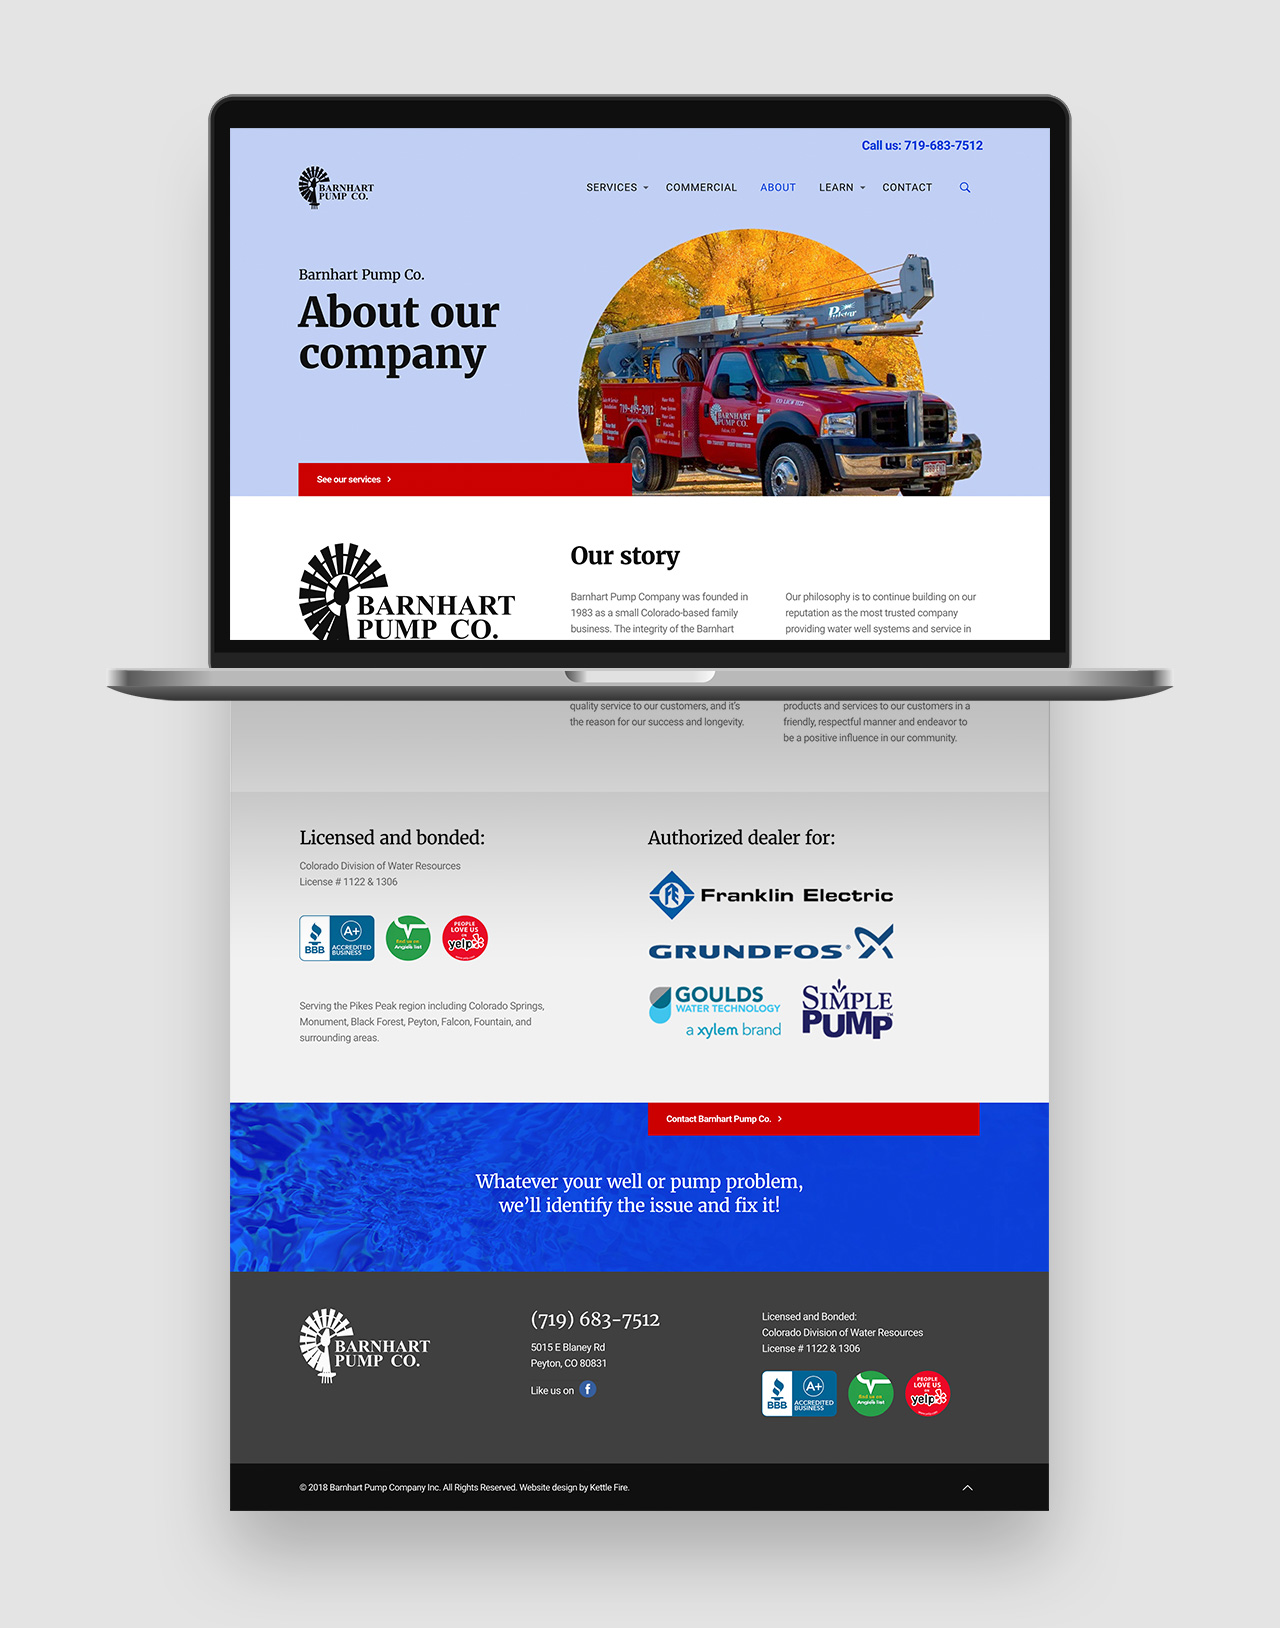 web design user experience Barnhart Pump Co by Kettle Fire Creative web design Web Design + User ExperiencePump Company bp website about mockup